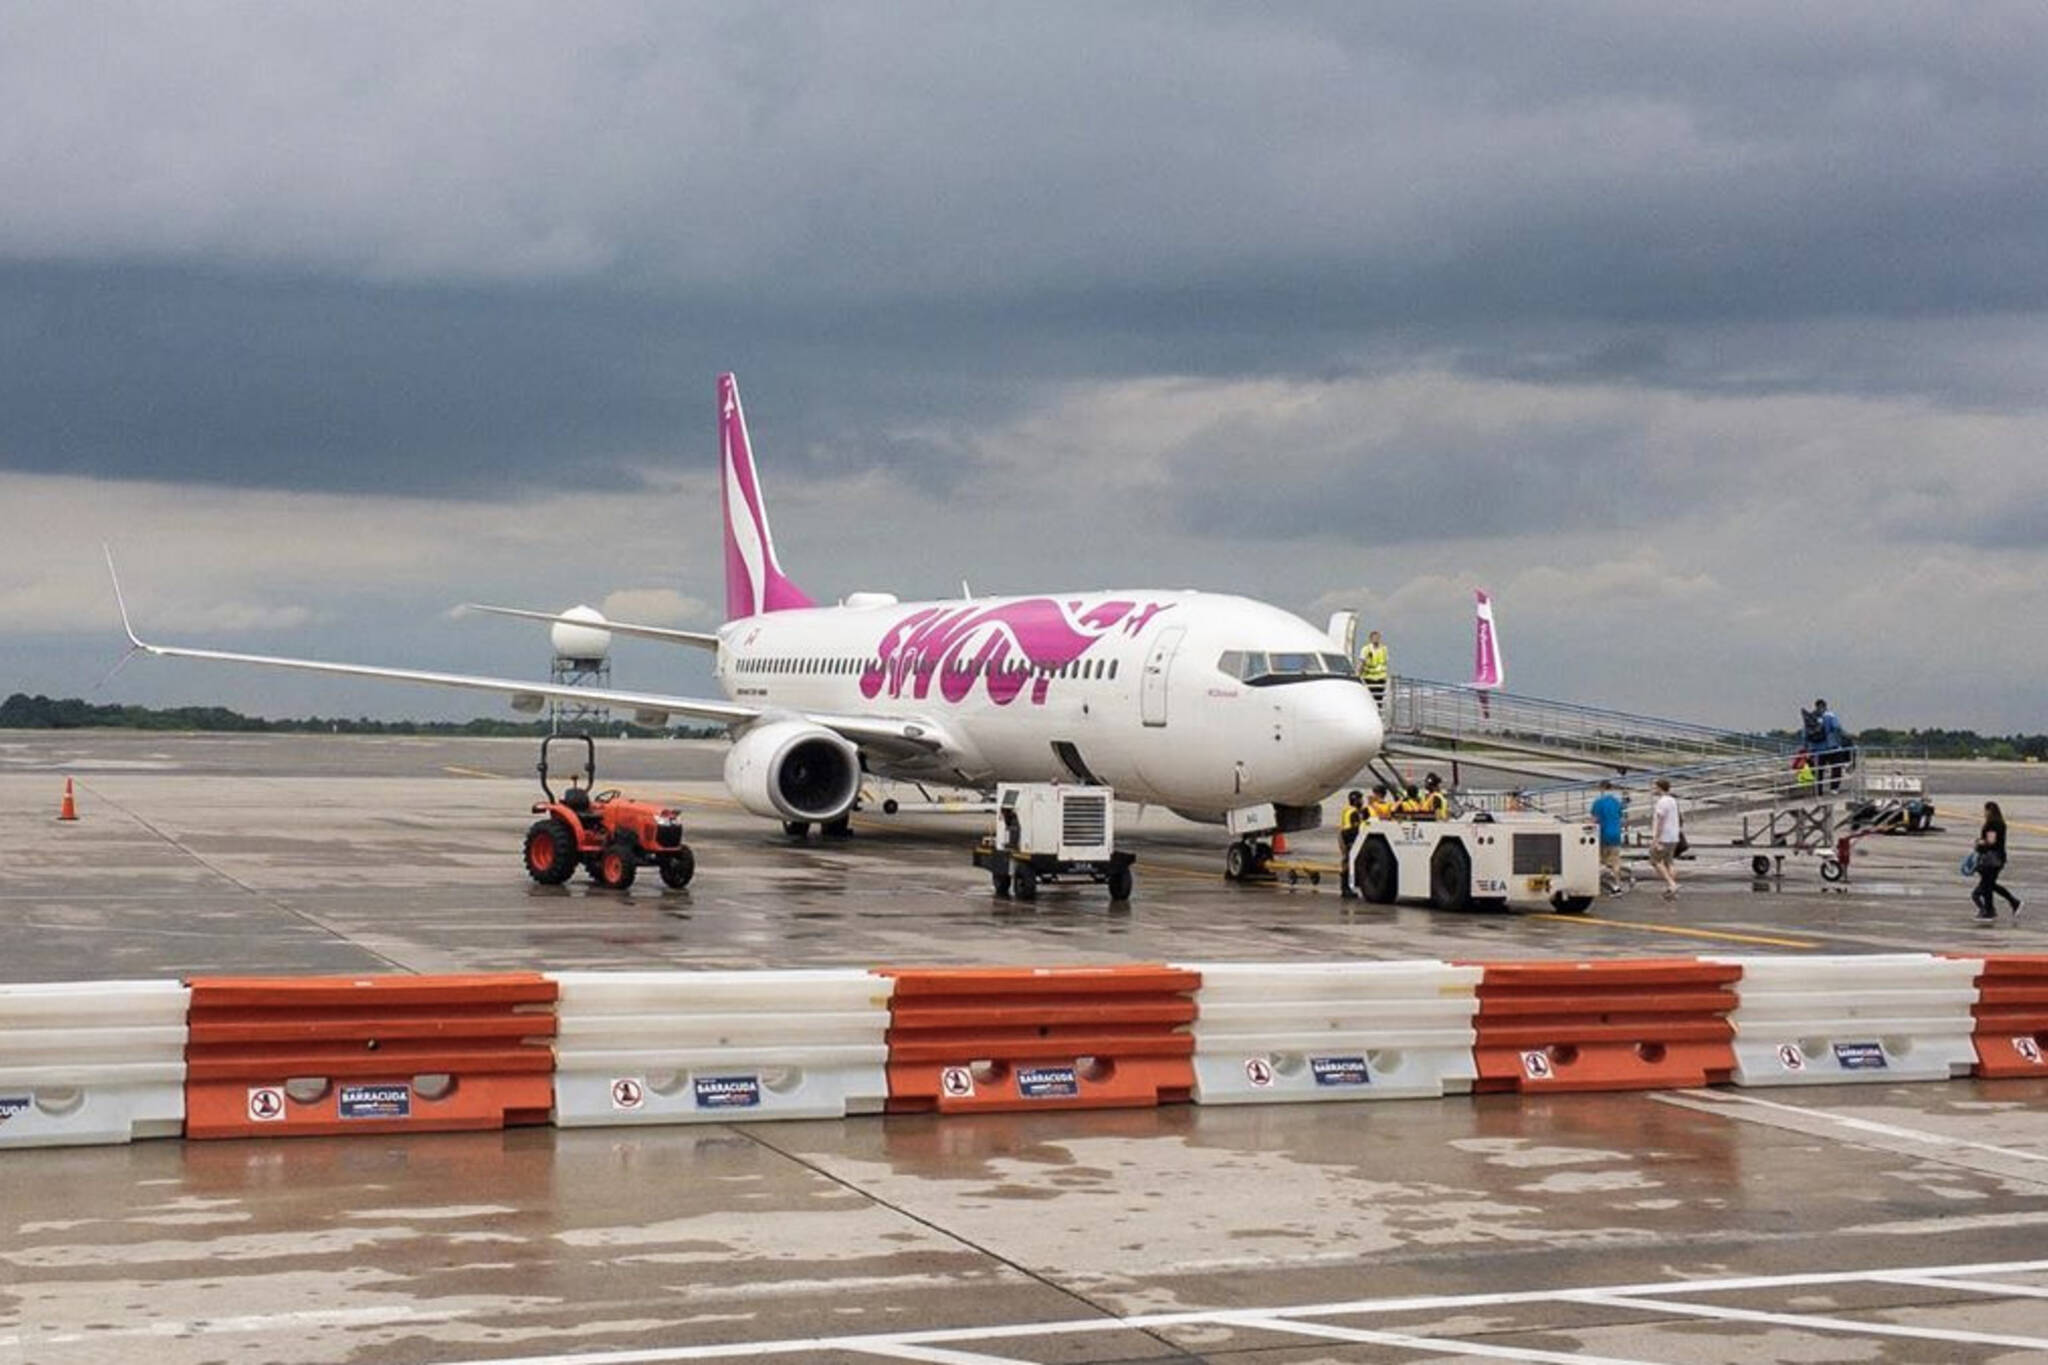 swoop airline cancellation